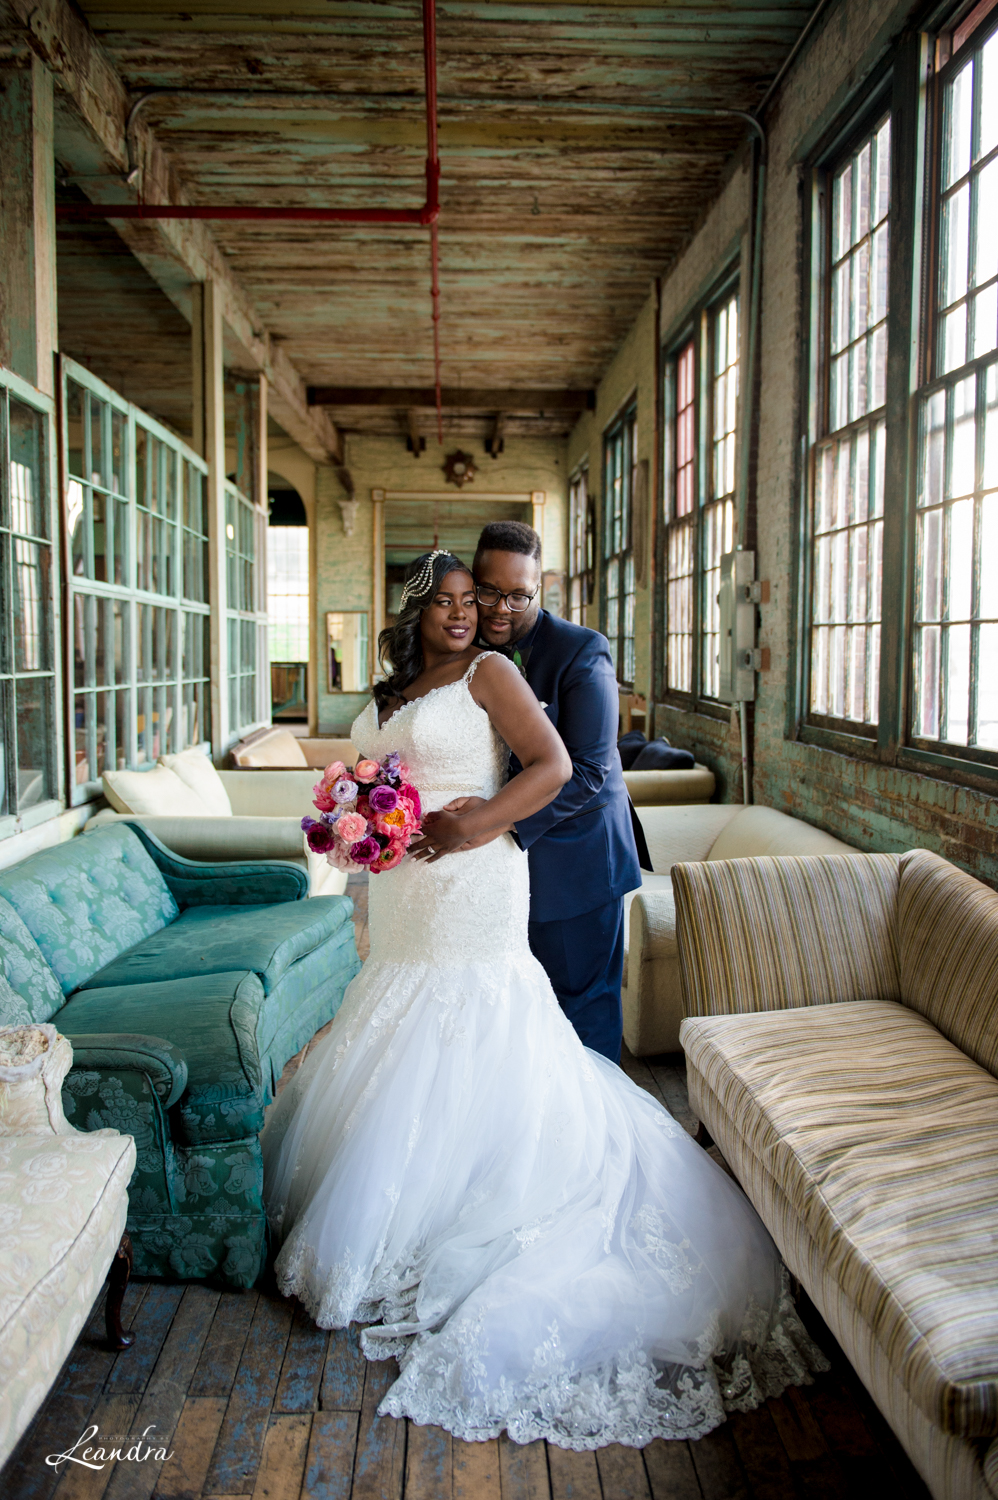 Metropolitan Building Wedding Bride and Groom | Photography by Leandra